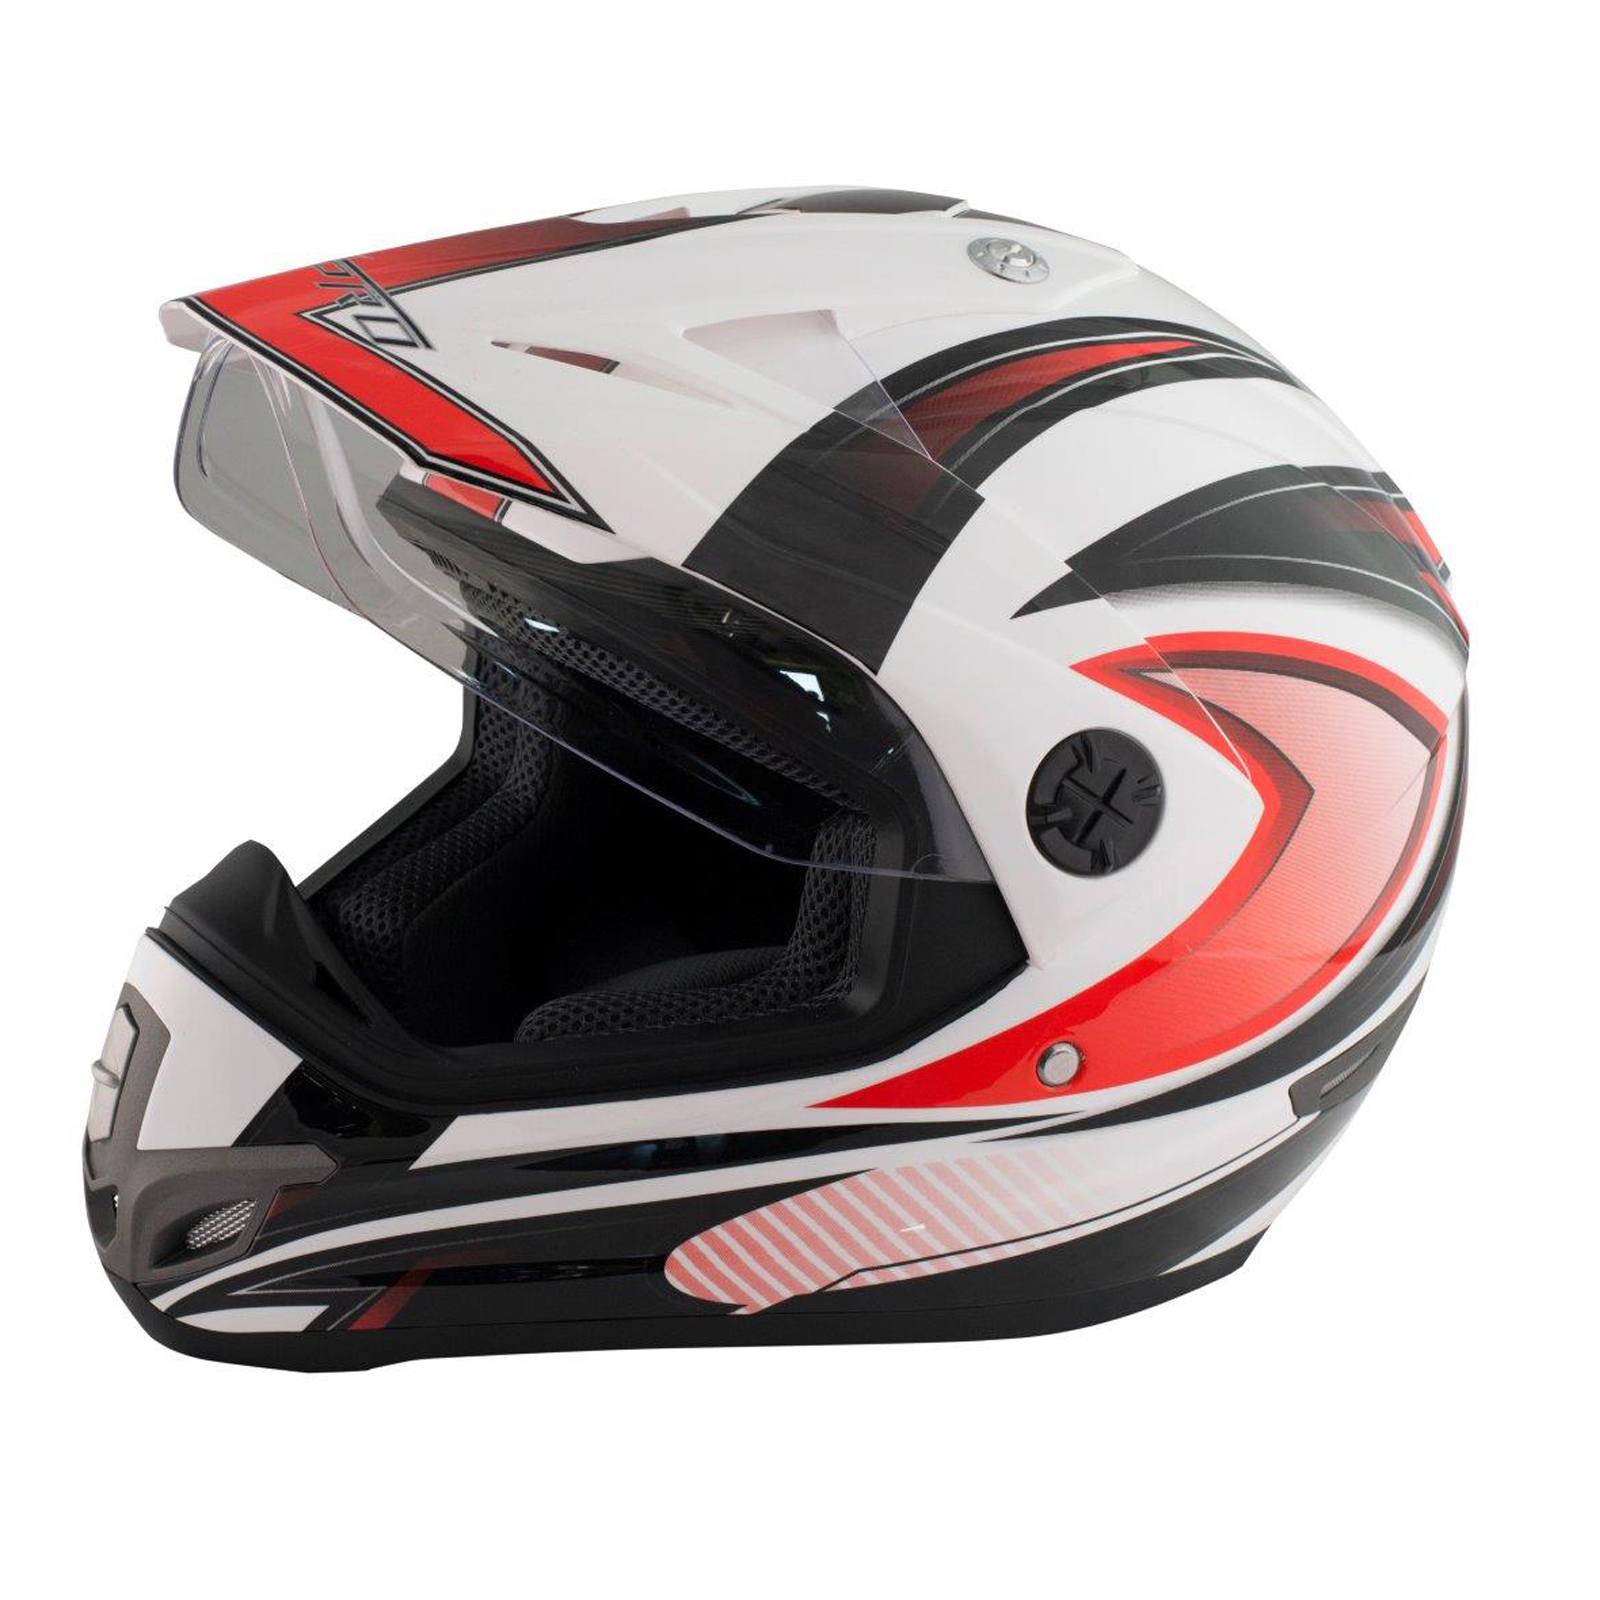 casque motocross moto enduro offroad quad atv visi re anti bu e ebay. Black Bedroom Furniture Sets. Home Design Ideas